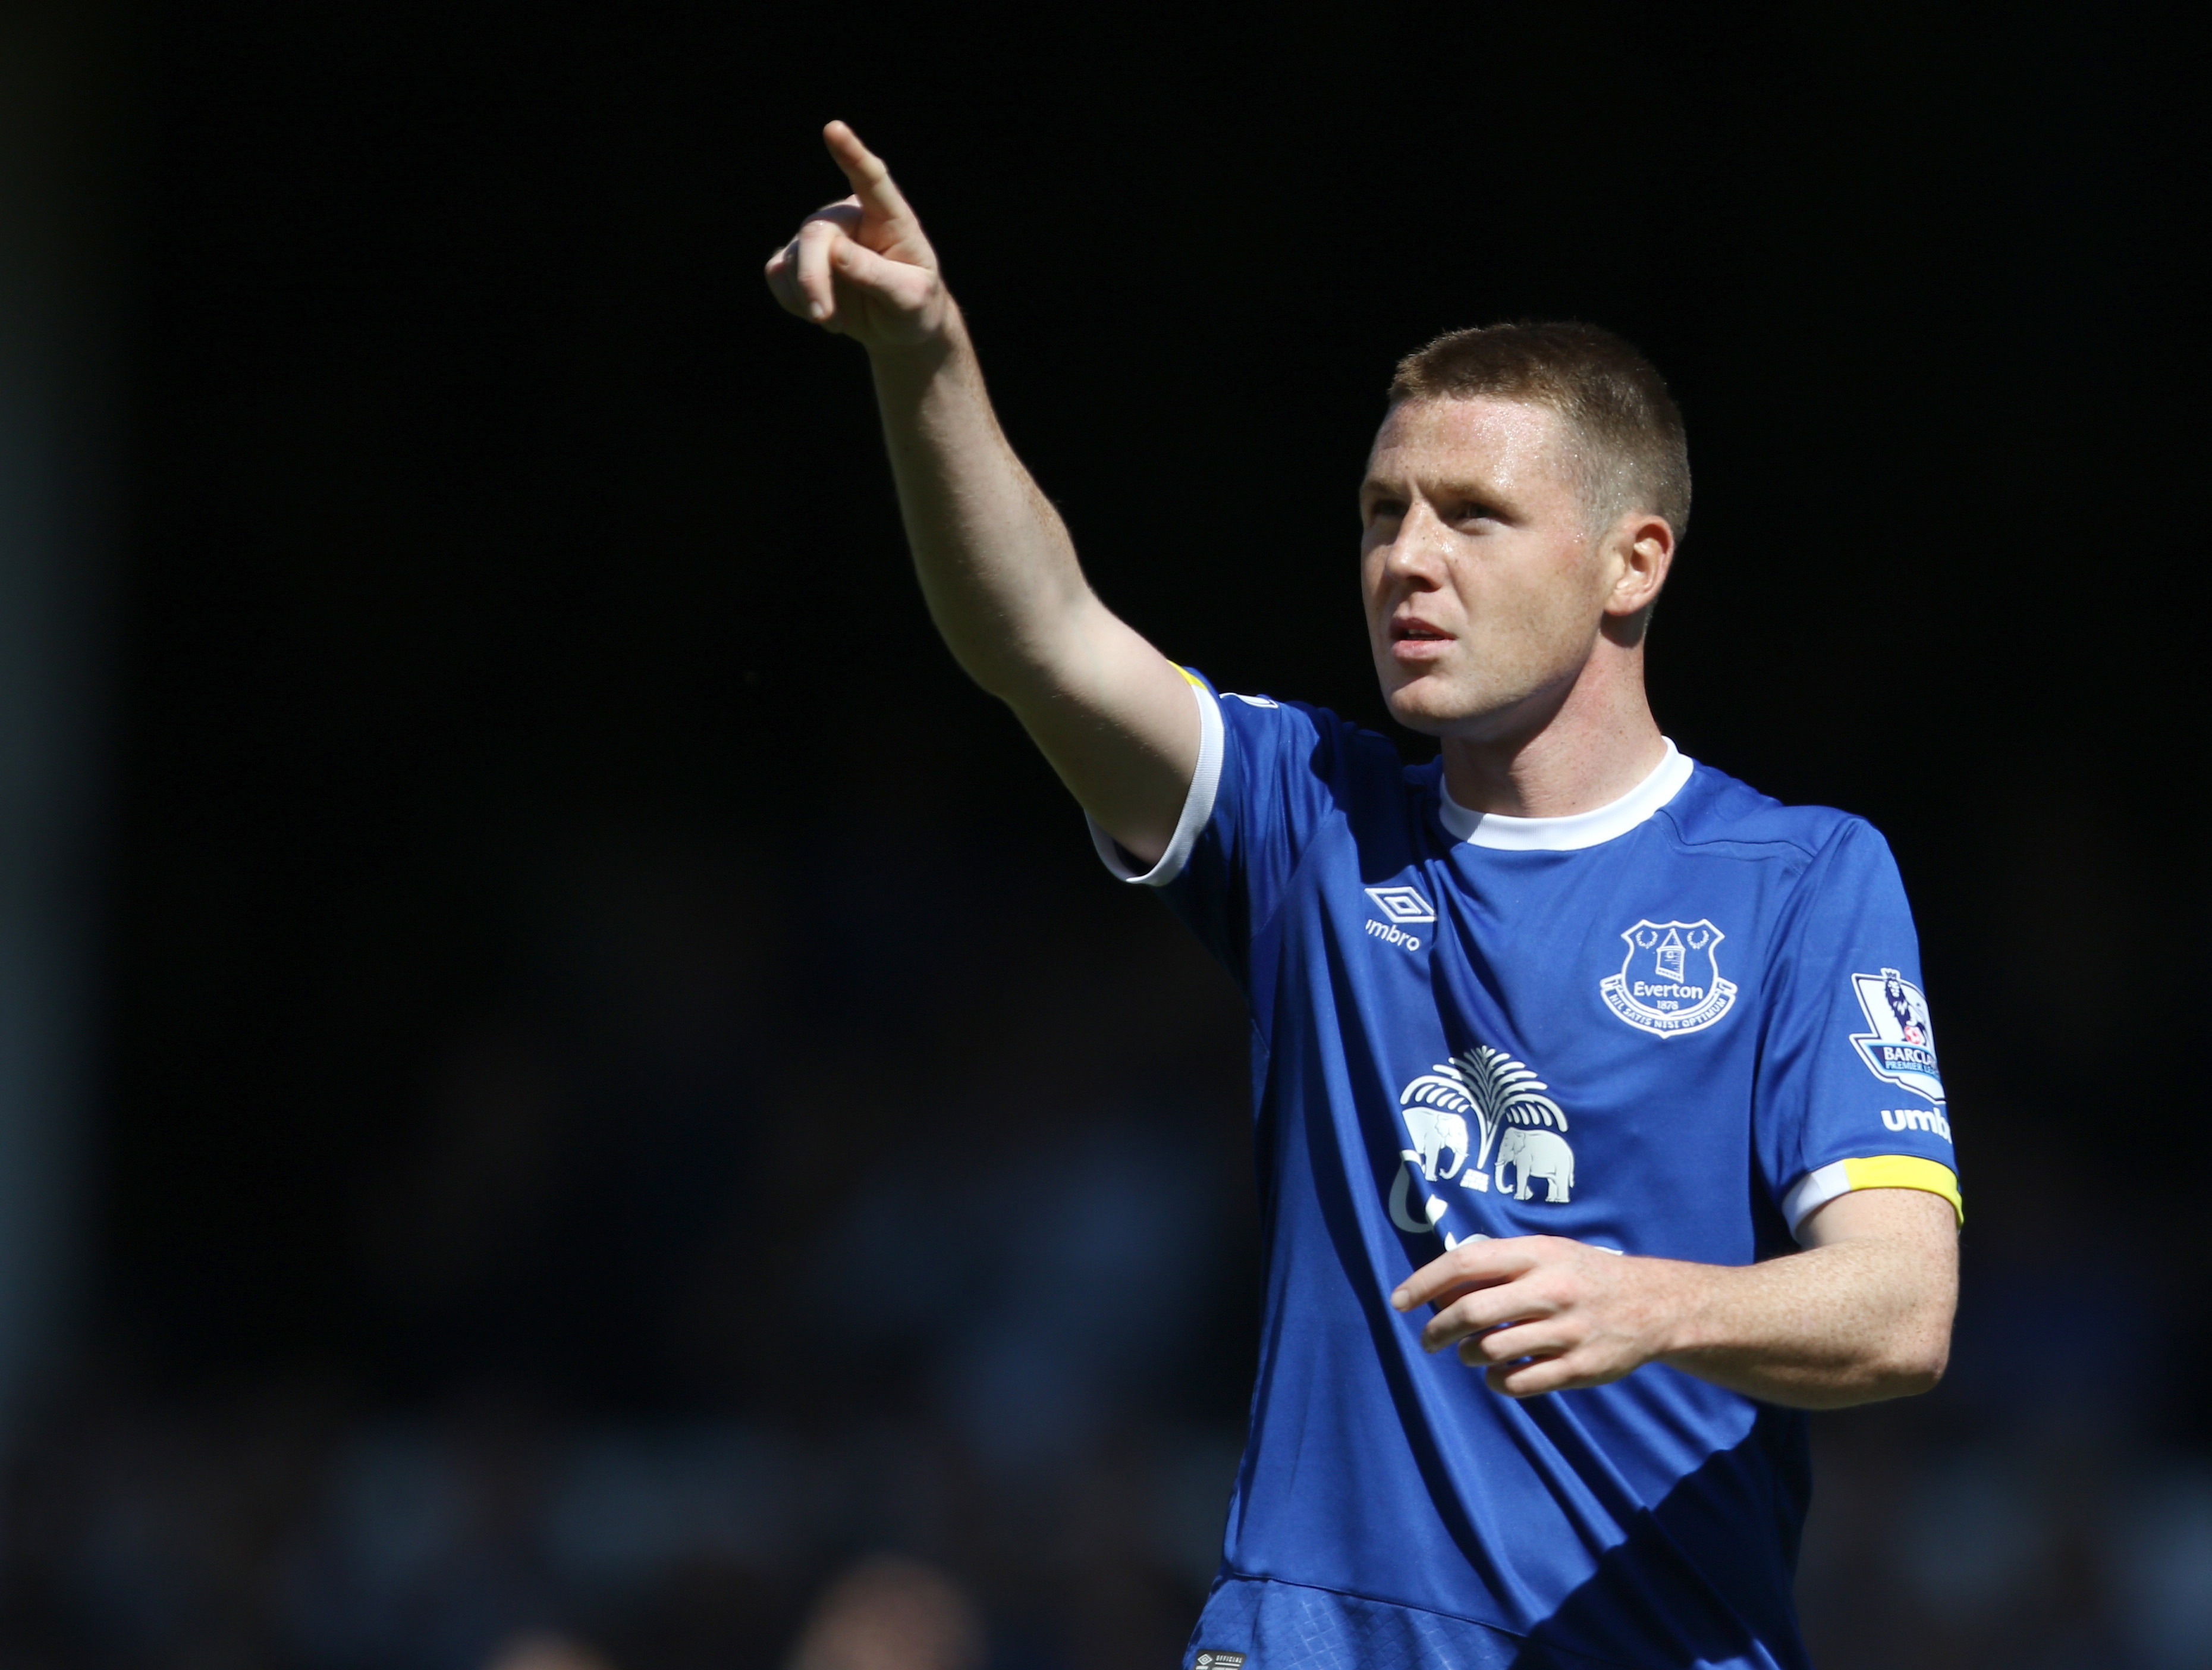 Everton's James McCarthy celebrates scoring his side's first goal of the game during the Barclays Premier League match at Goodison Park, Liverpool.